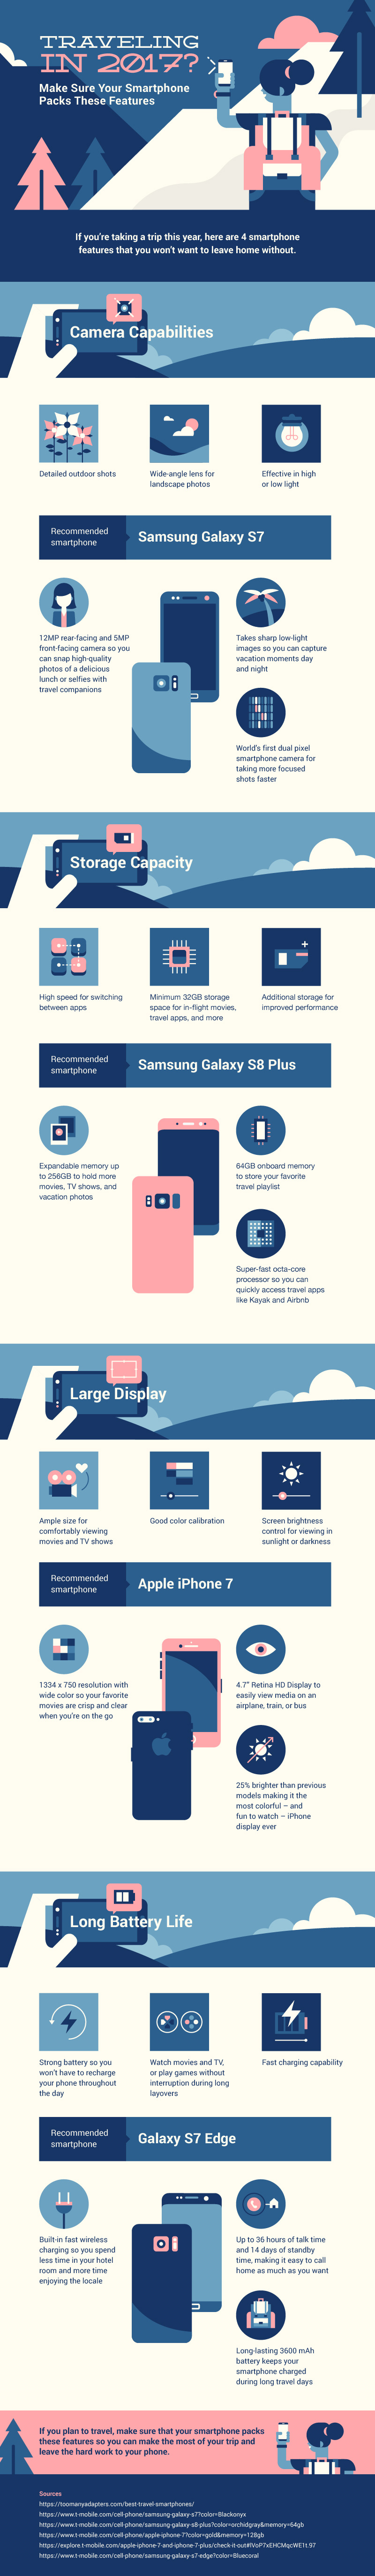 T Mobile Infographic